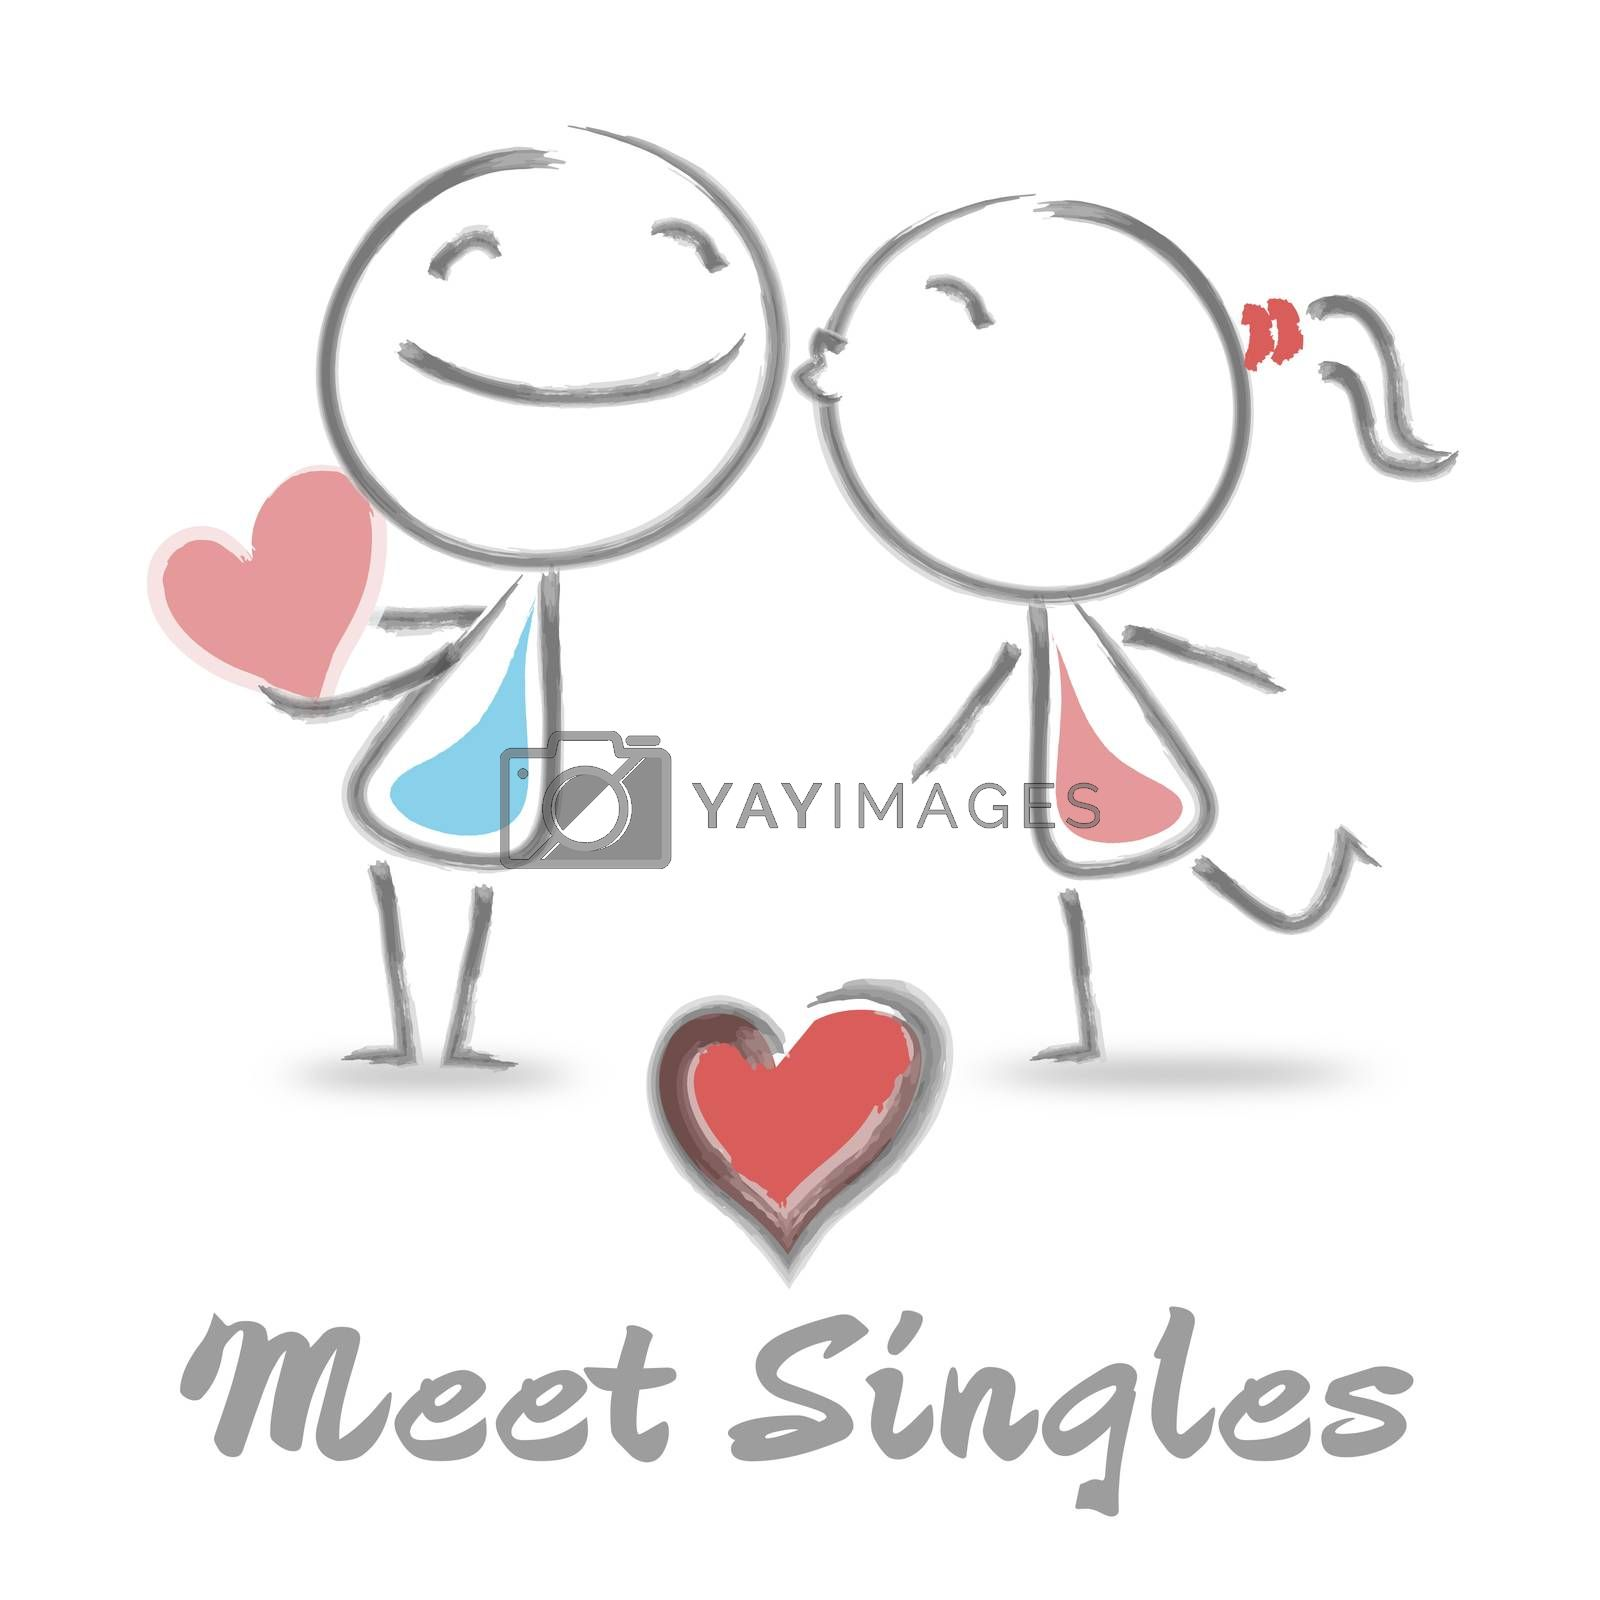 Meet Singles Indicating Find Love And Romance